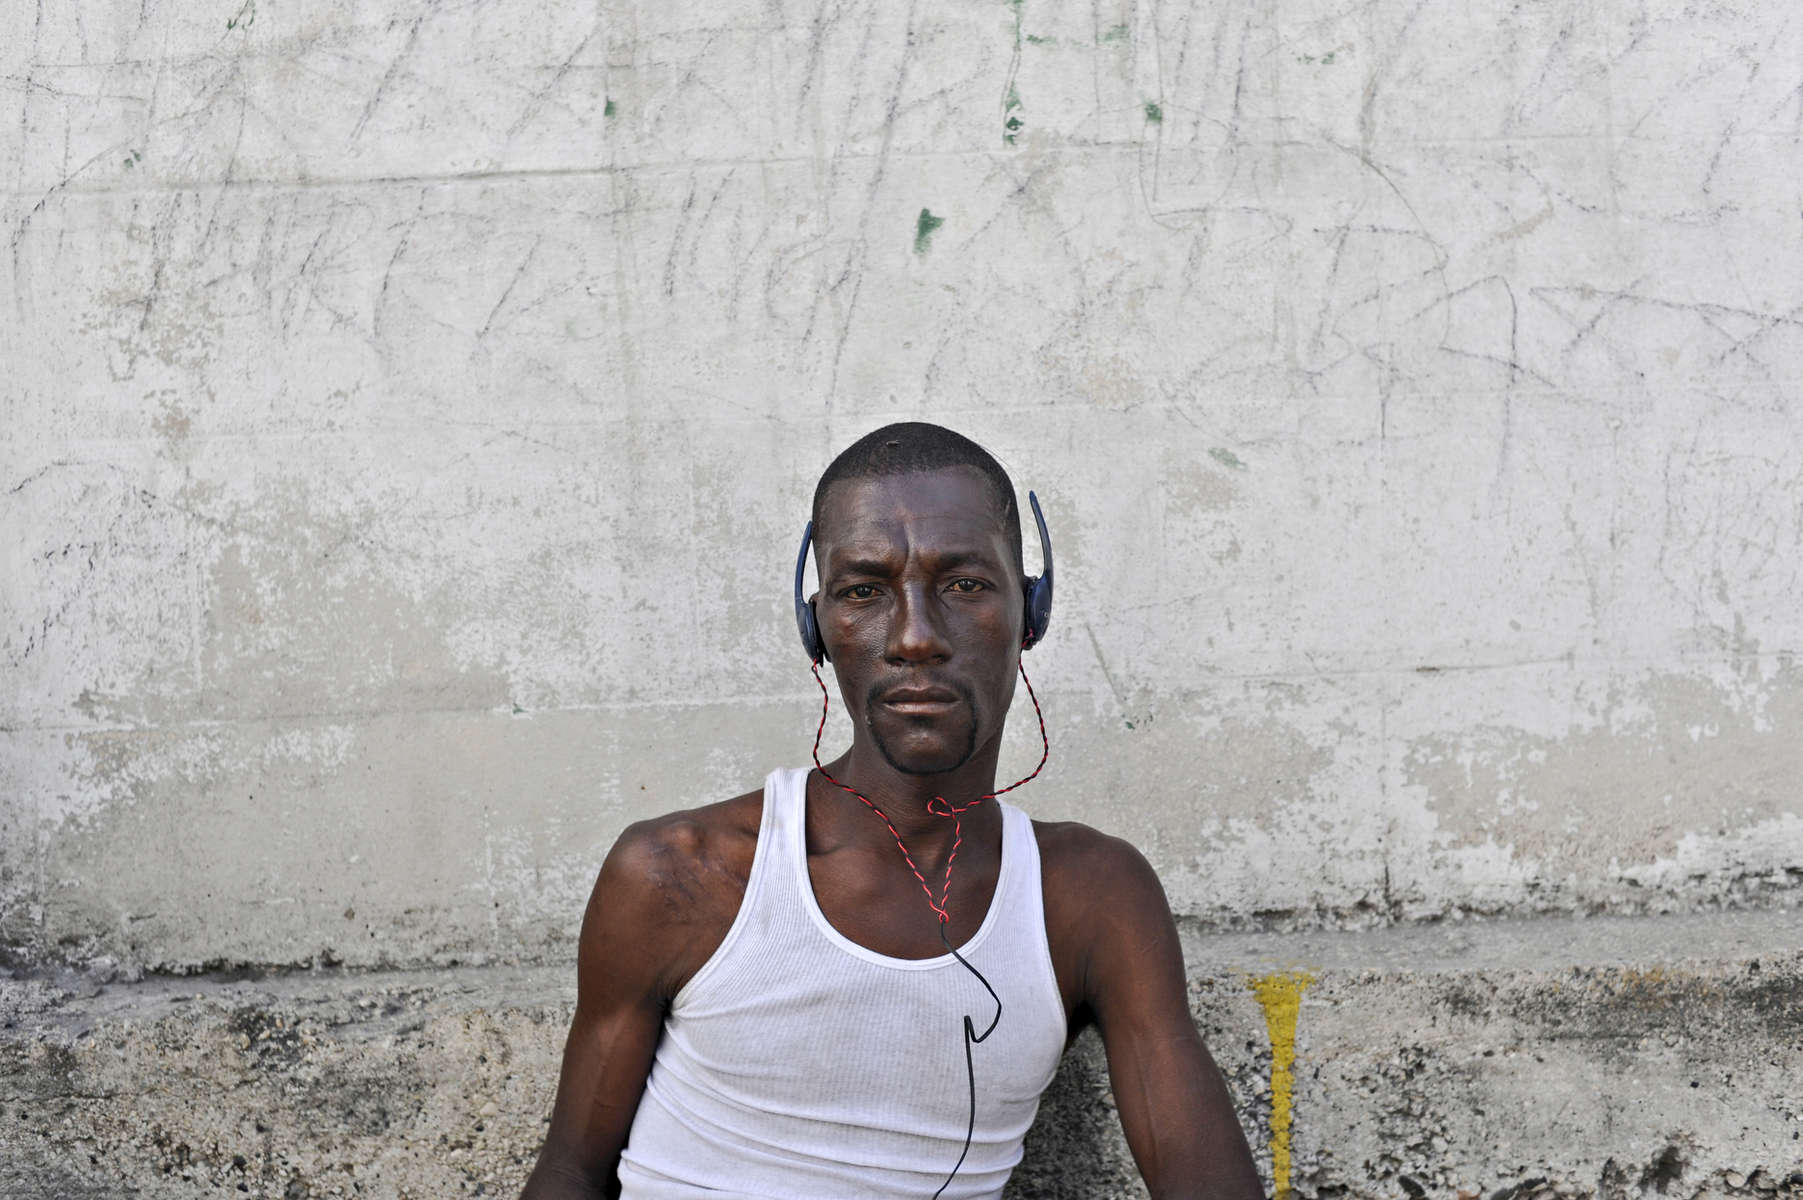 Haiti.  Port-Au-Prince.  2010.  A Haitian worker hired to distribute food aid listens to music while waiting for orders to load his truck with rice.